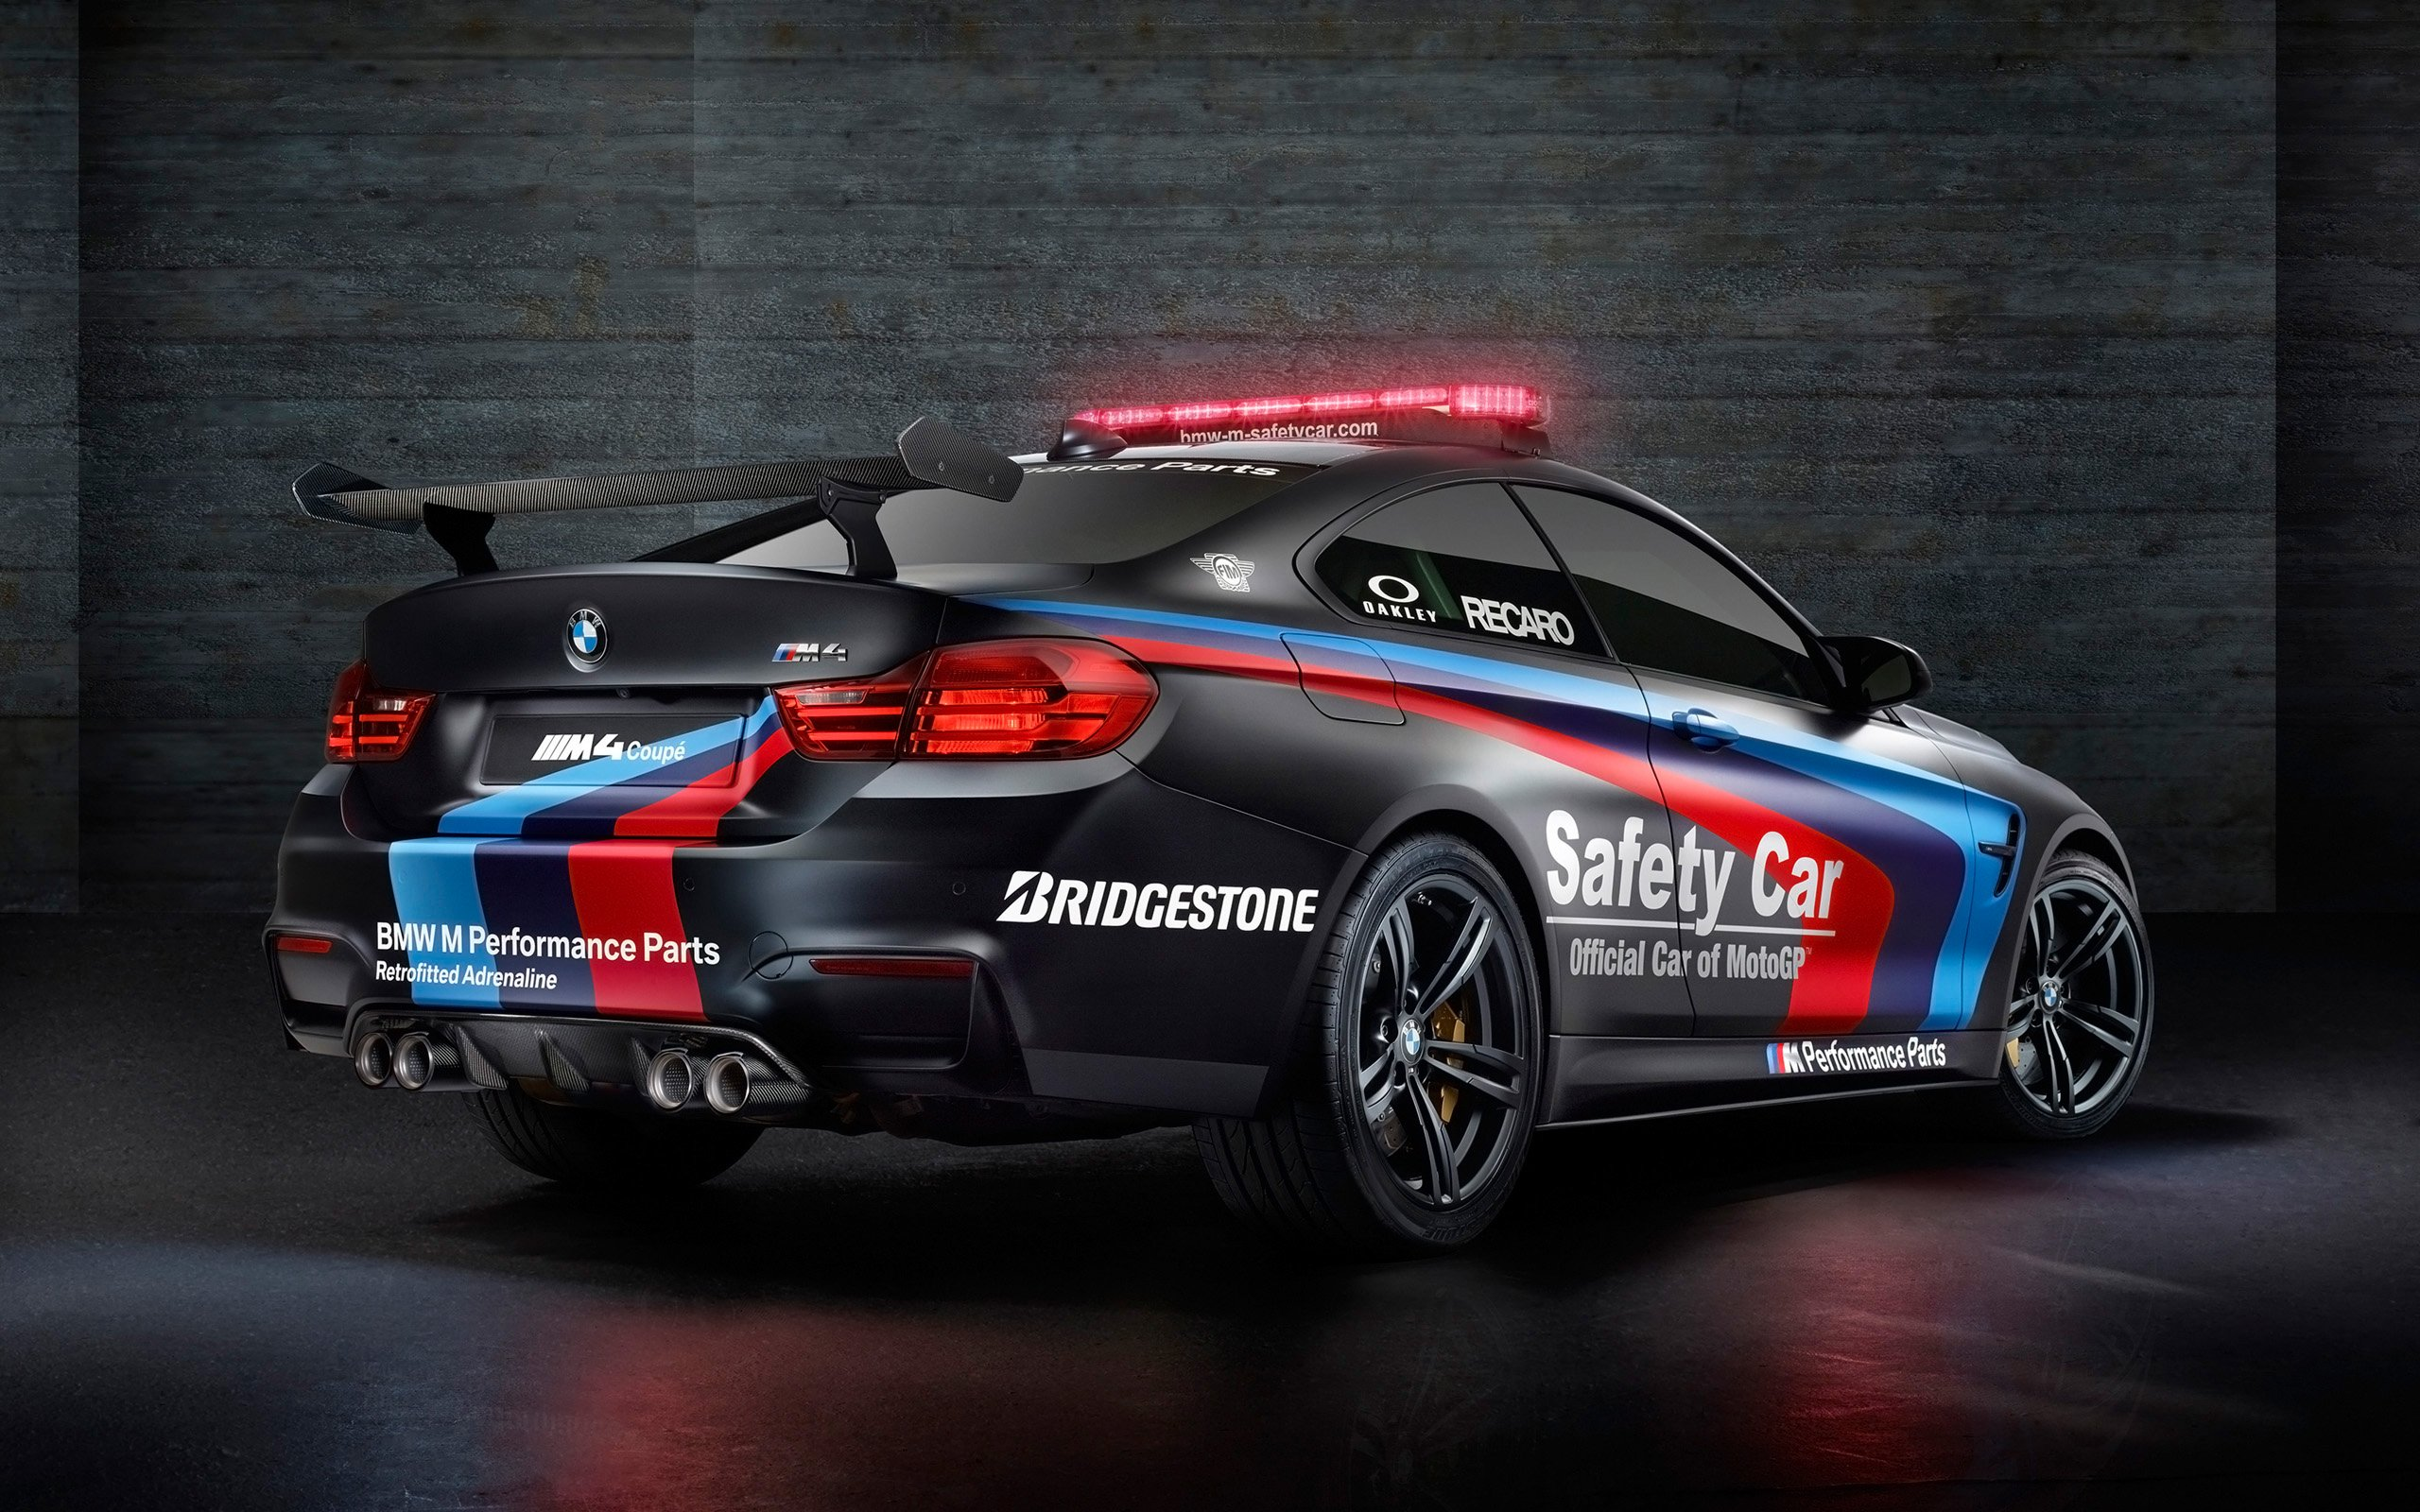 2015 BMW M4 MotoGP Safety Car 3 Wallpaper HD Car Wallpapers 2560x1600